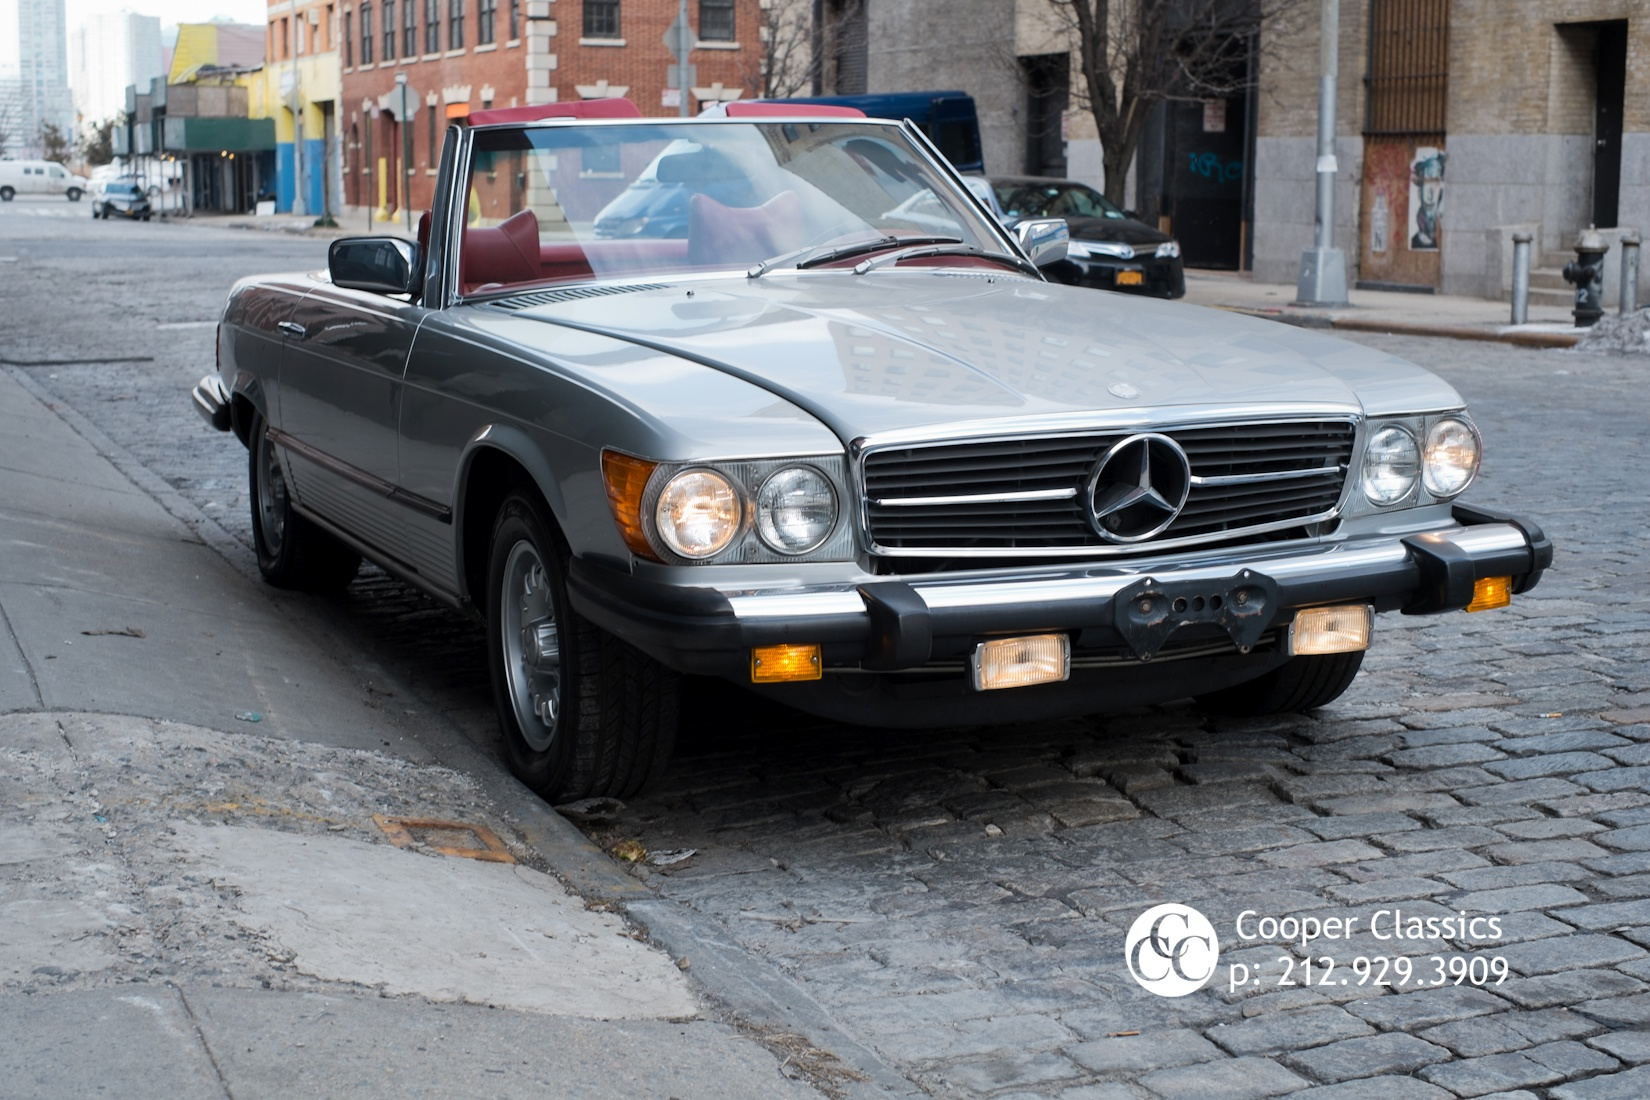 1979 mercedes benz 450sl stock 555 for sale near new for Used 450sl mercedes benz sale